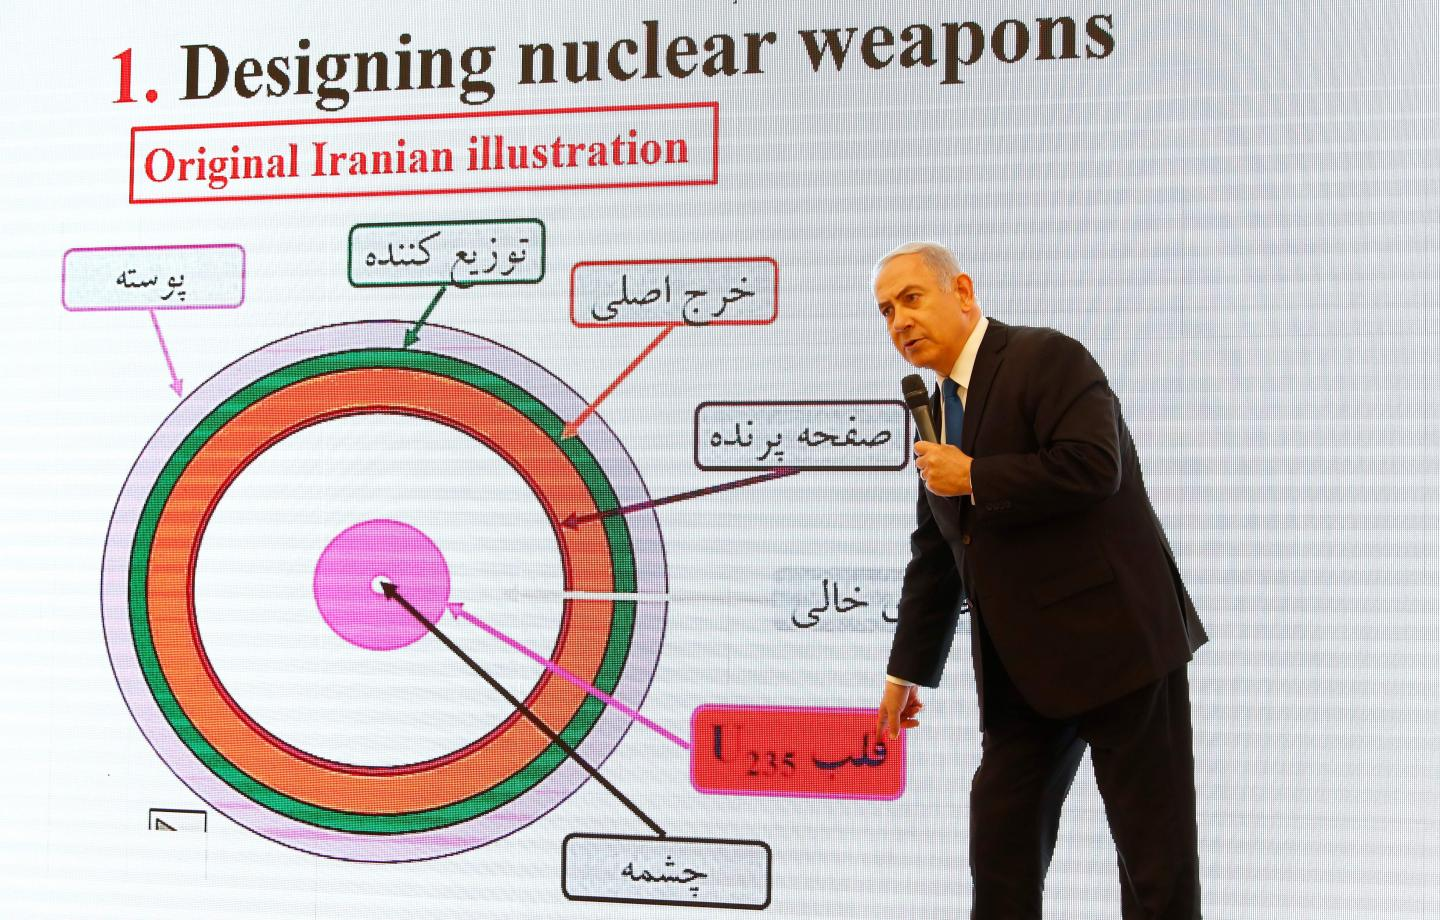 Israel will not allow Iran to develop nuclear weapons say PM Netanyahu